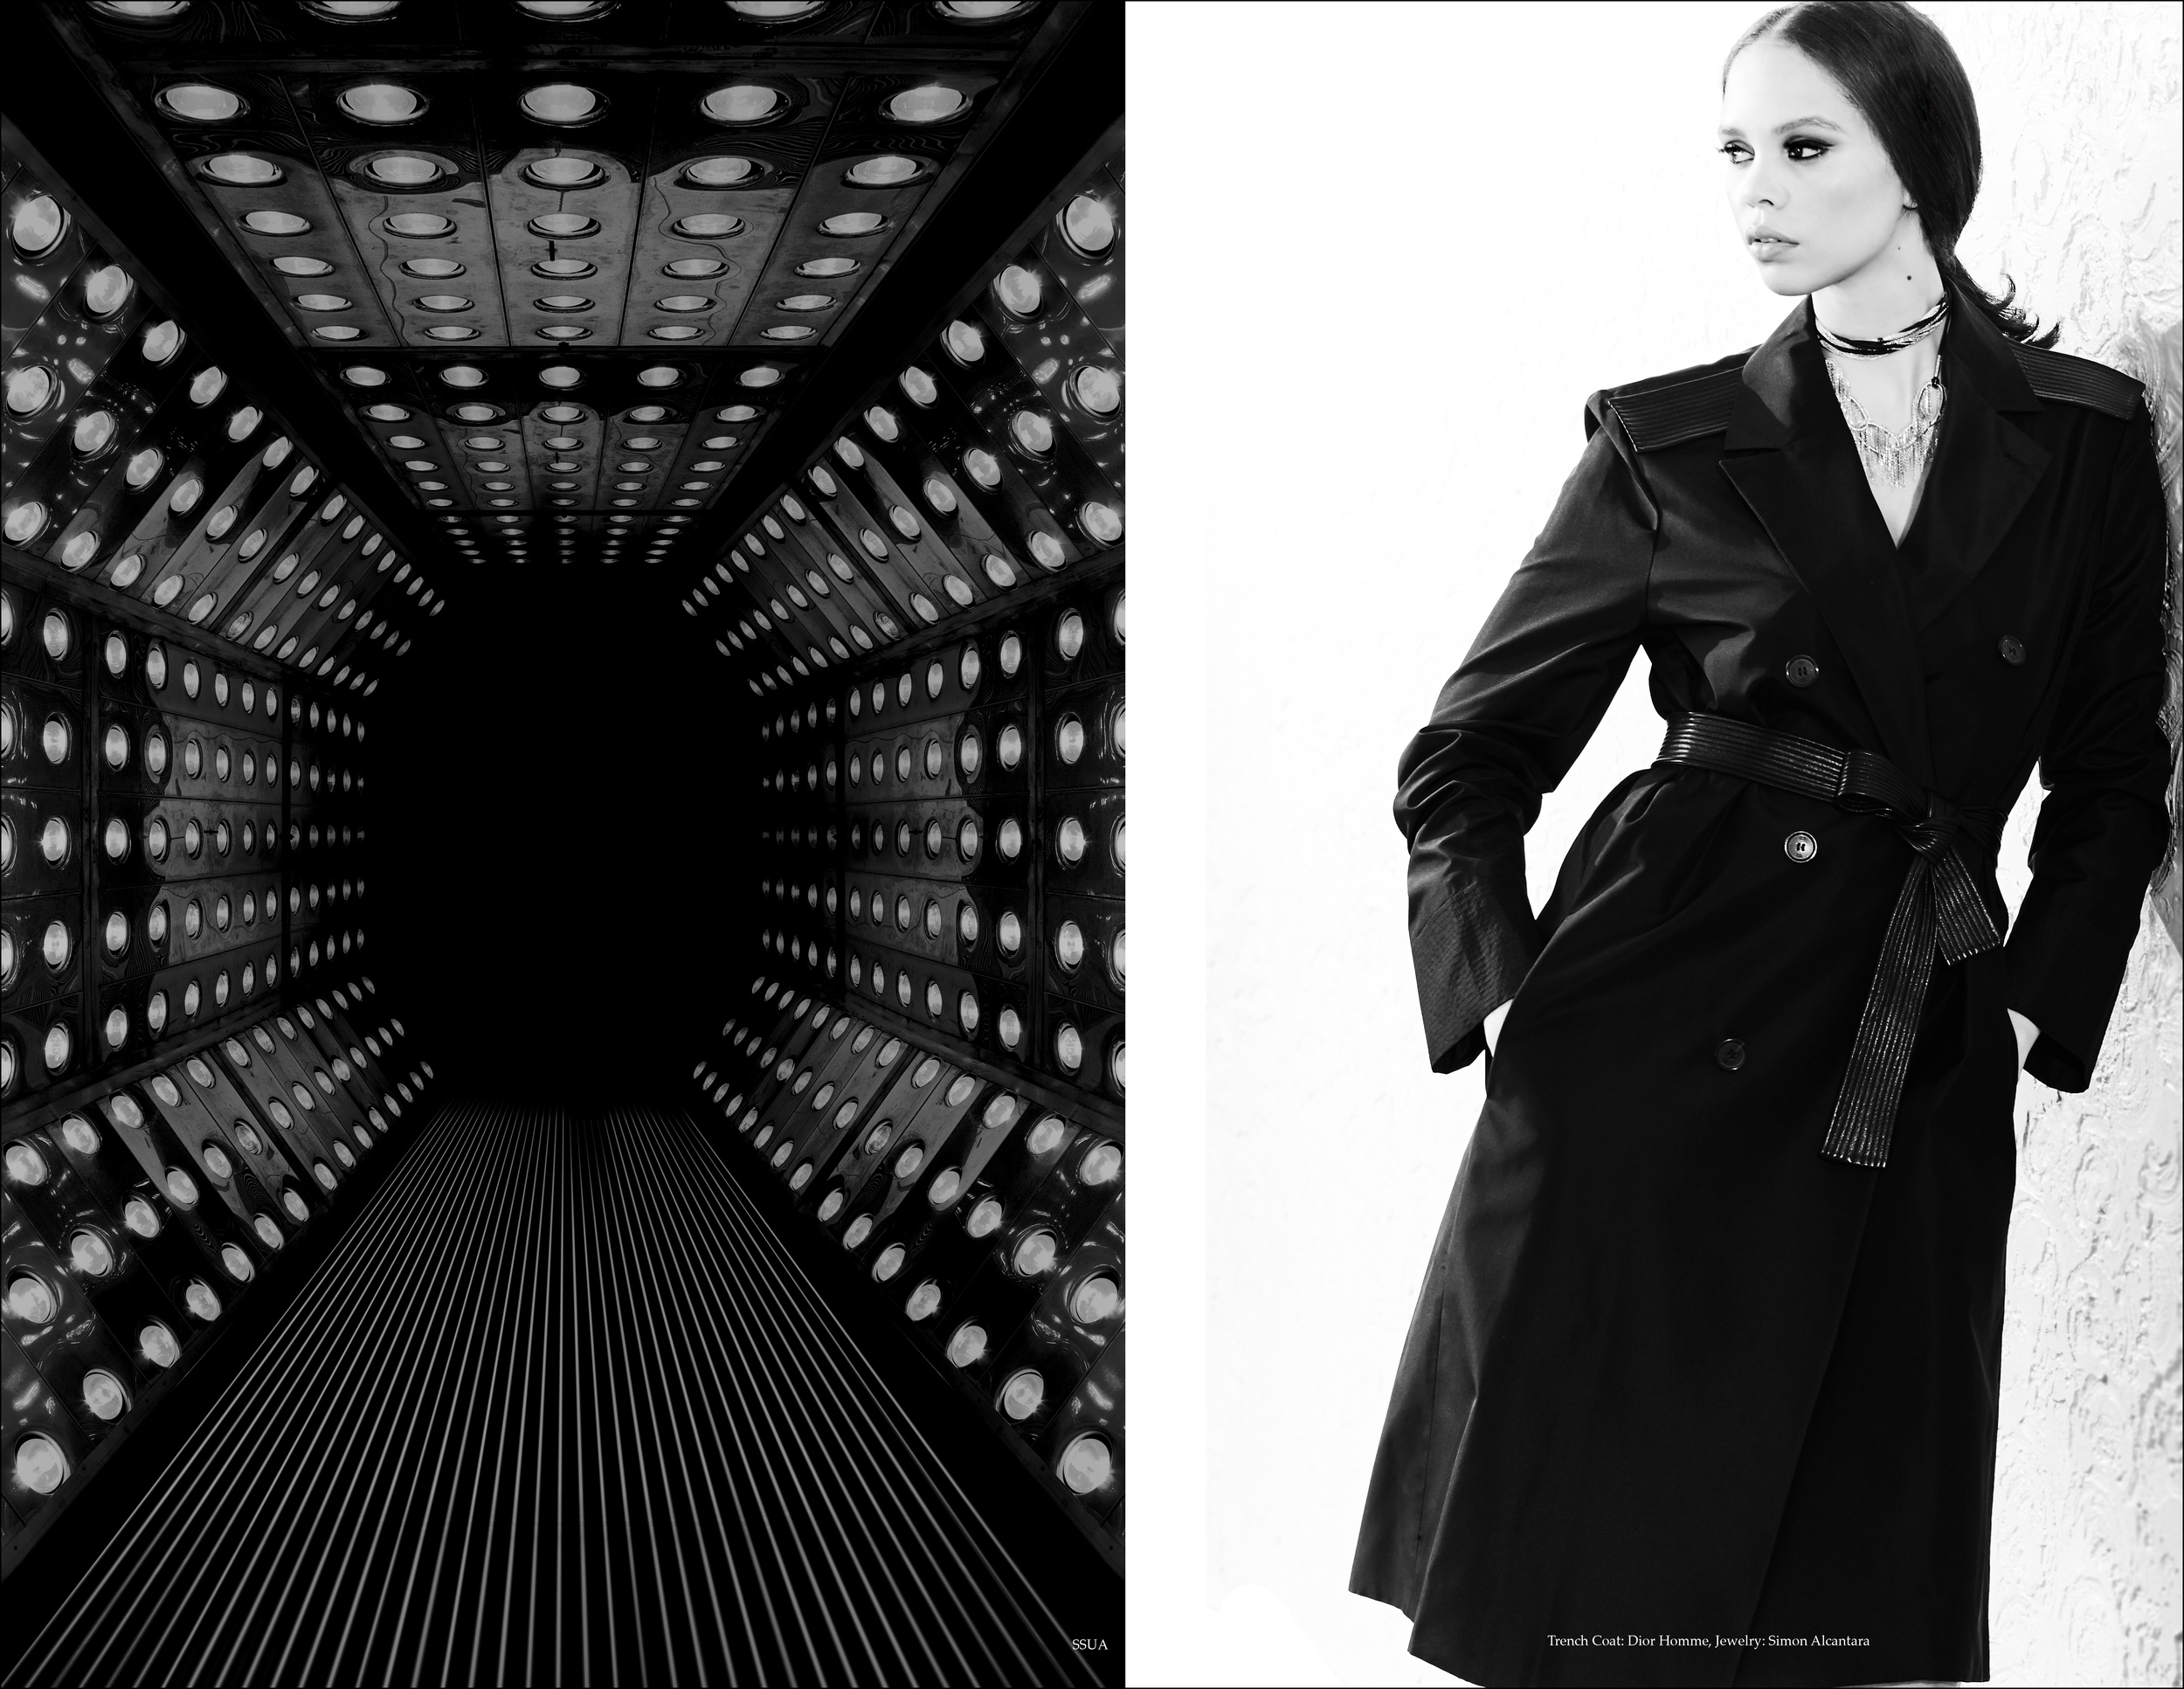 MODEL: CARLA PRIETO, PHOTOGRAPHER: HENRY LOPEZ,   CINEMATOGRAPHER; ANNA LEE CAMPBELL,STYLIST: MENGLY HERNANDEZ, MAKEUP AND HAIR: GRISELLE ROSARIO. ART DIRECTION, DESIGN DIRECTION AND JEWELRY SIMON ALCANTARA. POST PRODUCTION: MAXMILLION ROSARIO PRODUCED BY CREATIVE COLLECTIVE COL-LAB. CASTING: OSCAR MONTES DE OCA.    TRENCH COAT: DIOR HOMME